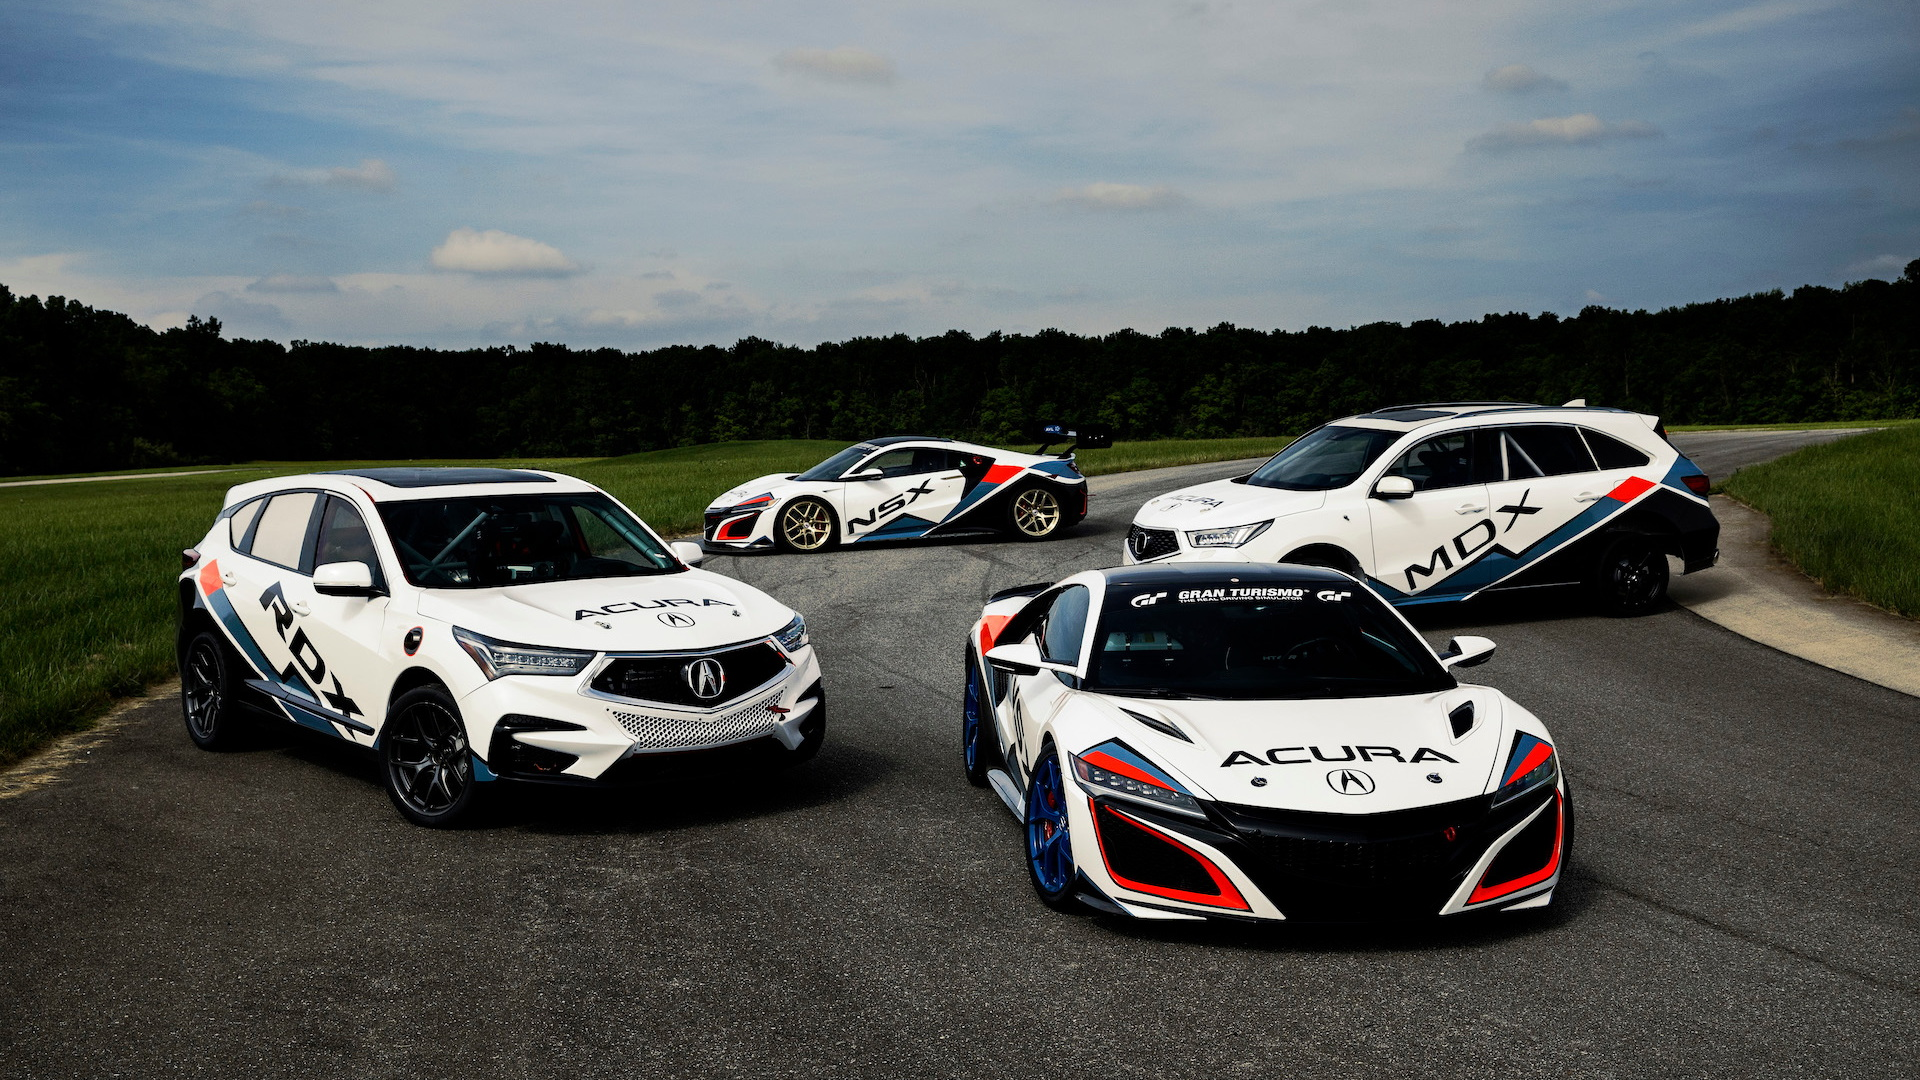 Acura Pikes Peak Hill Climb race cars